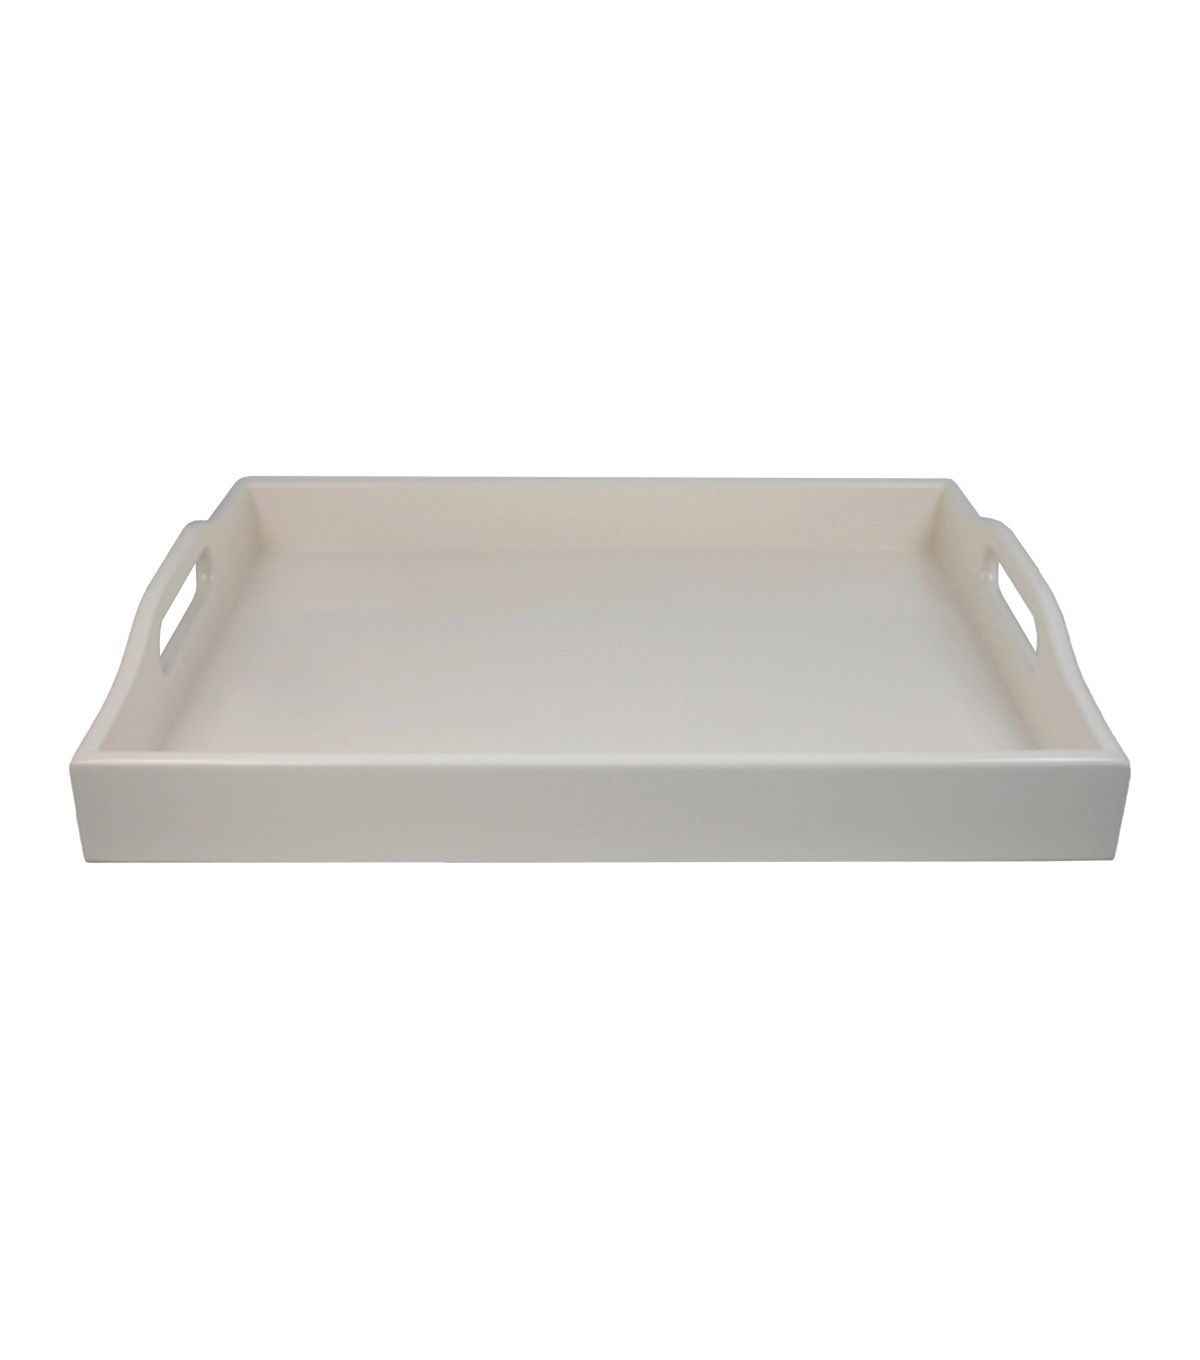 Decorative Tray Magnificent Hudson 43™ Laquered Decorative Traywhite  Decorative Trays And Trays Decorating Inspiration